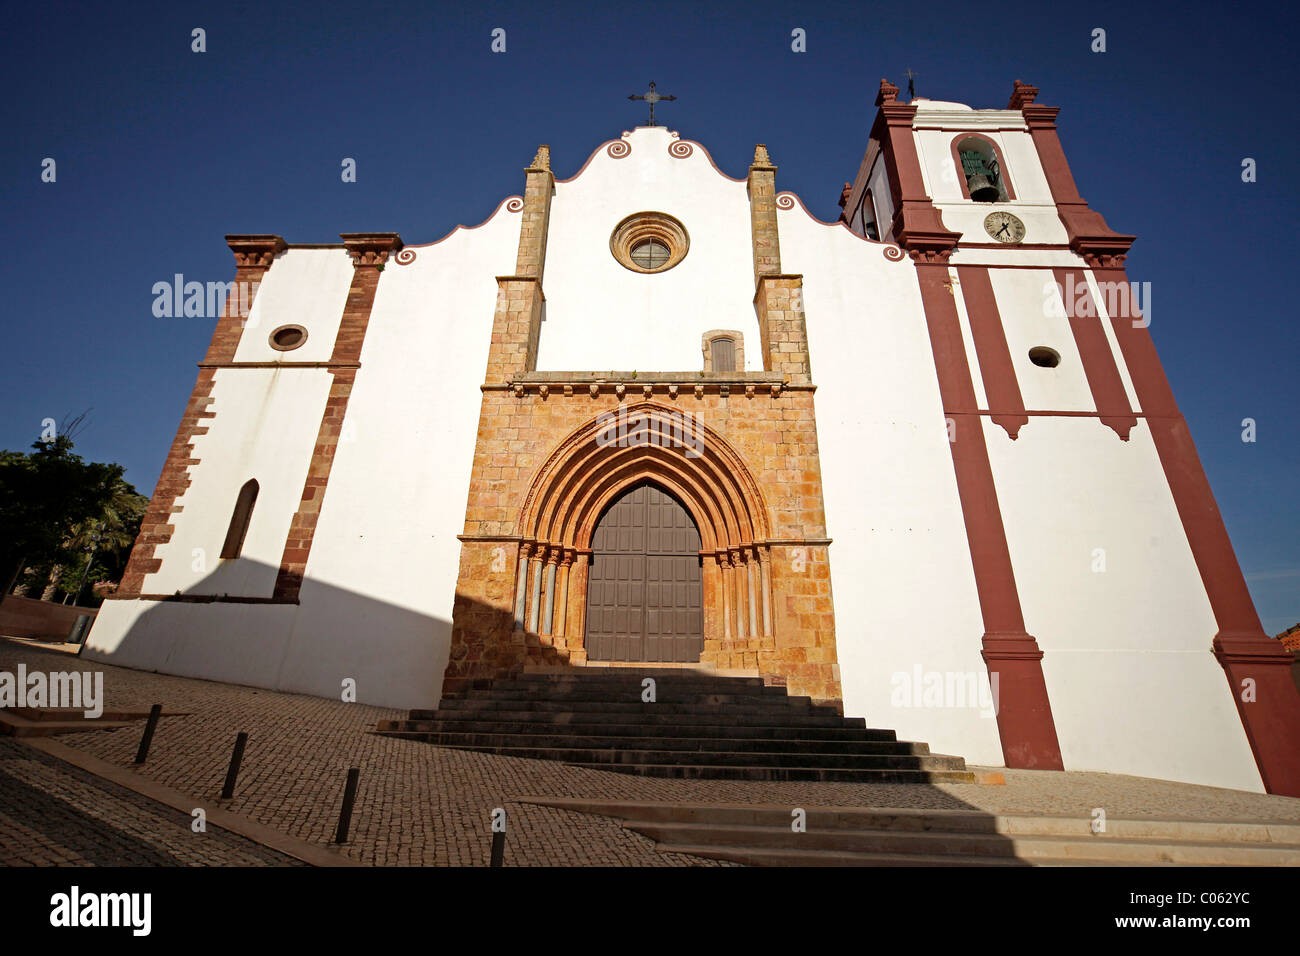 The Cathedral of Silves in the hinterland of the Algarve, Portugal, Europe - Stock Image